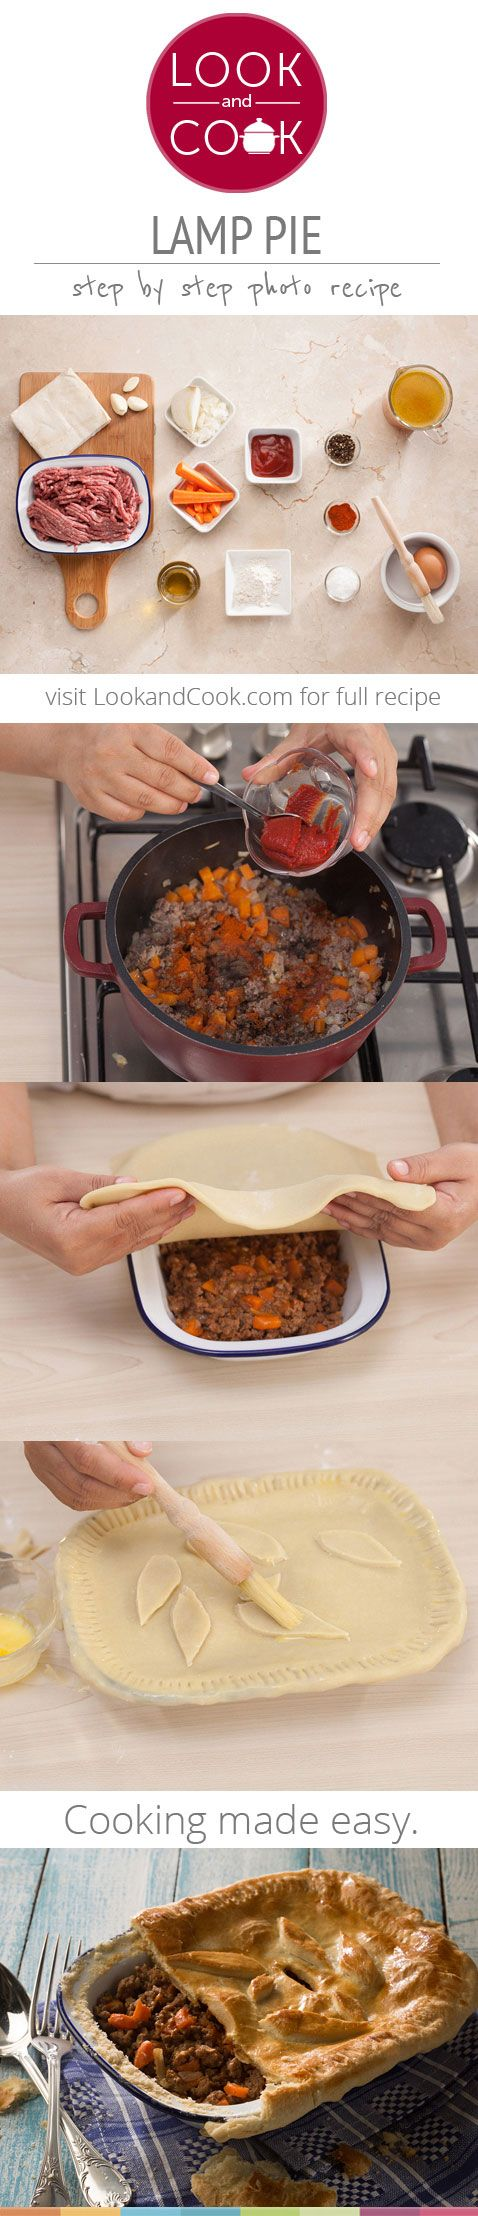 LAMB PIE RECIPE Lamb pie(#LC14106):  Tasty Lamb pie recipe with Vegetables baked to perfection in a crisp shortcrust pastry for that glorious mid-afternoon meal.